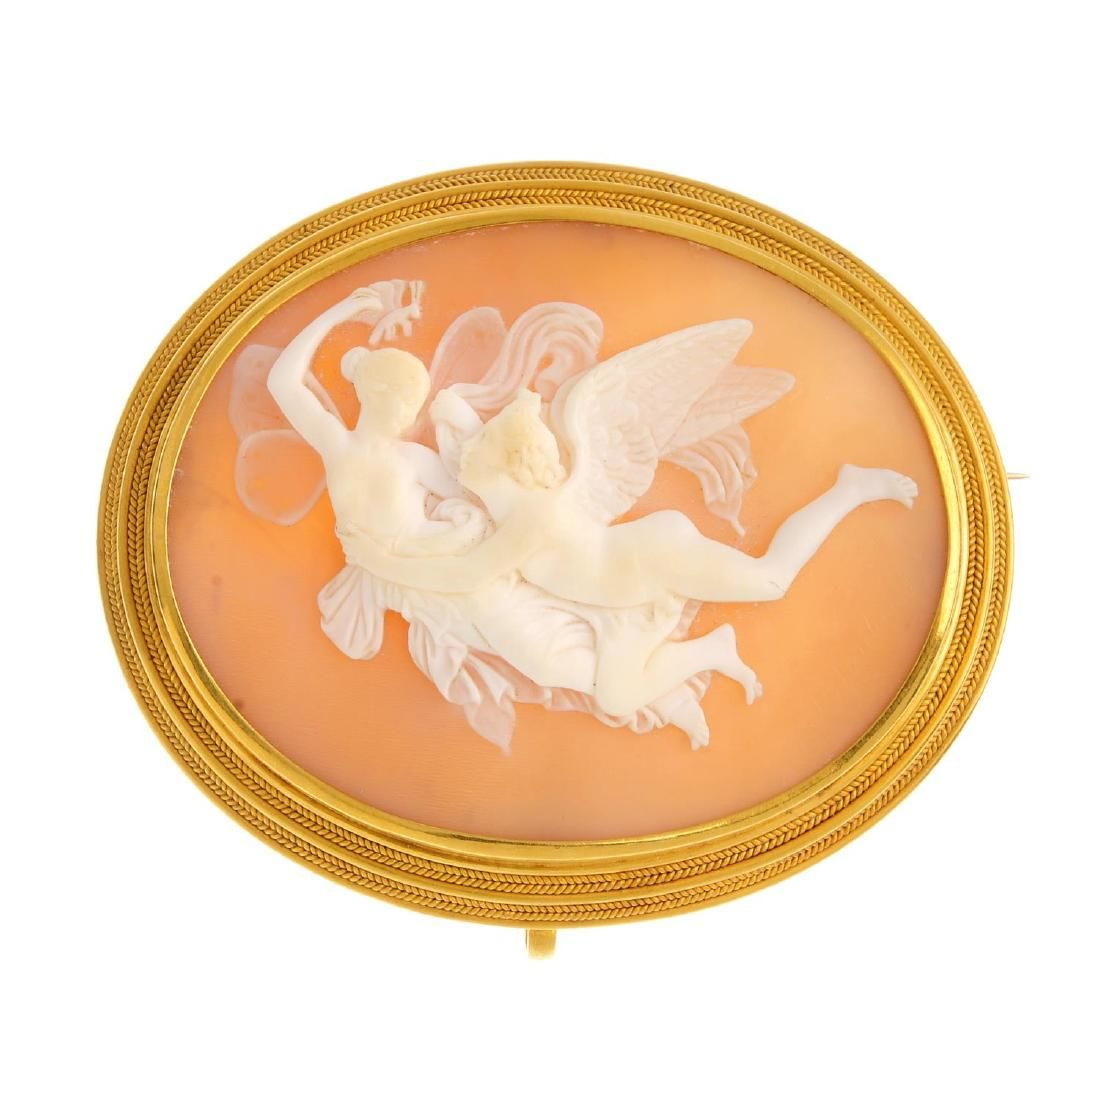 A mid Victorian gold mounted shell cameo brooch. Carved